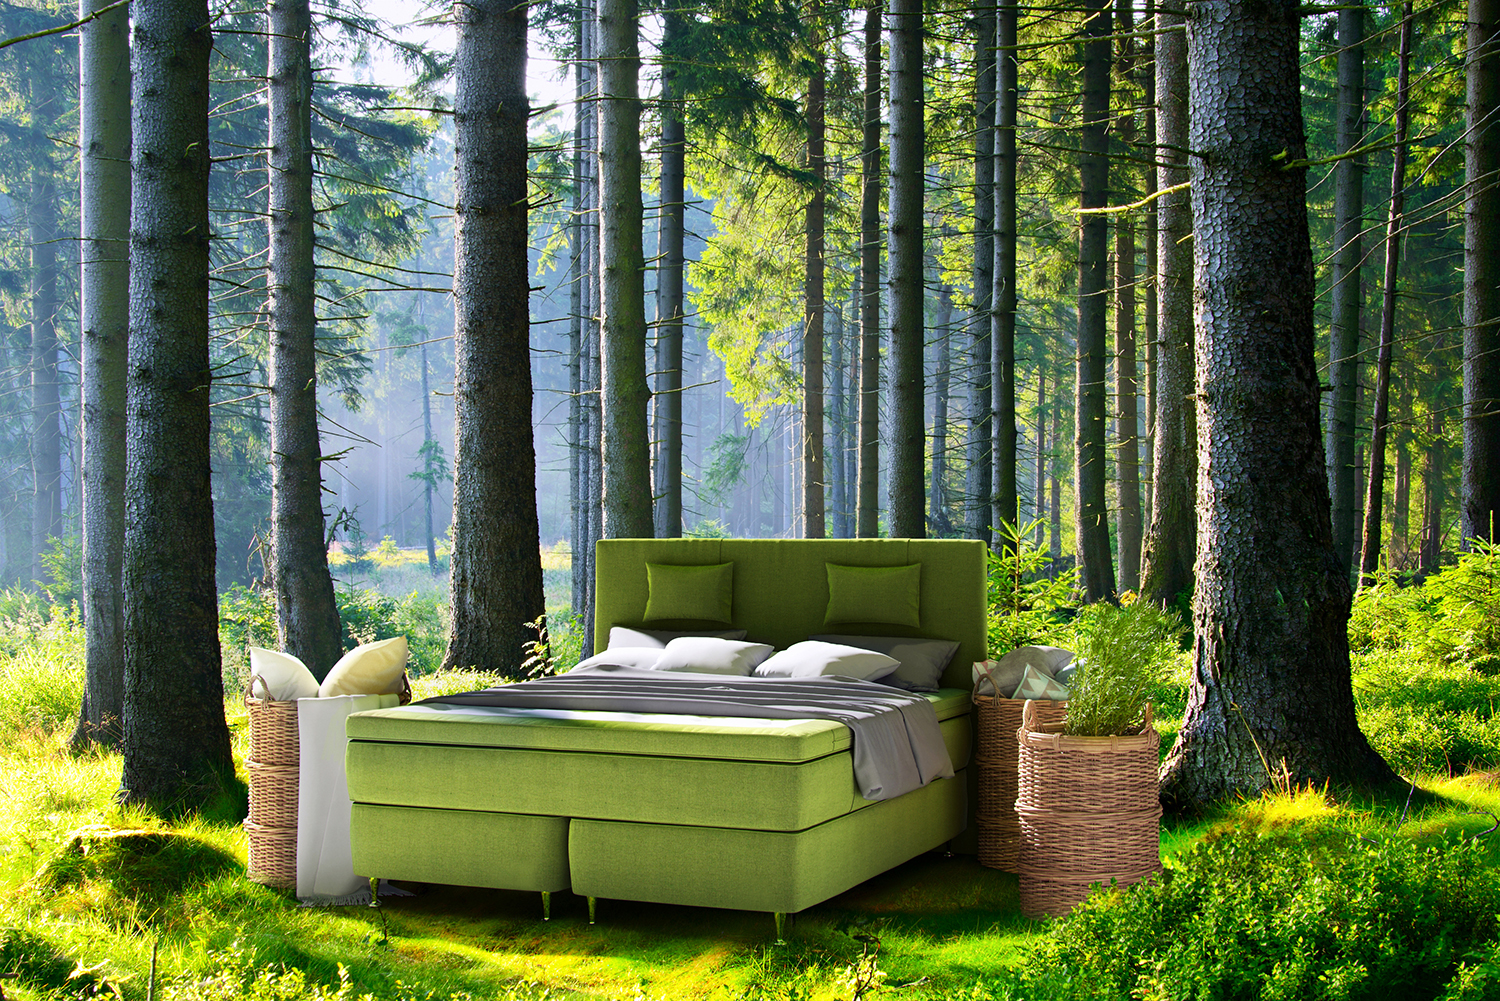 Ecolife beds